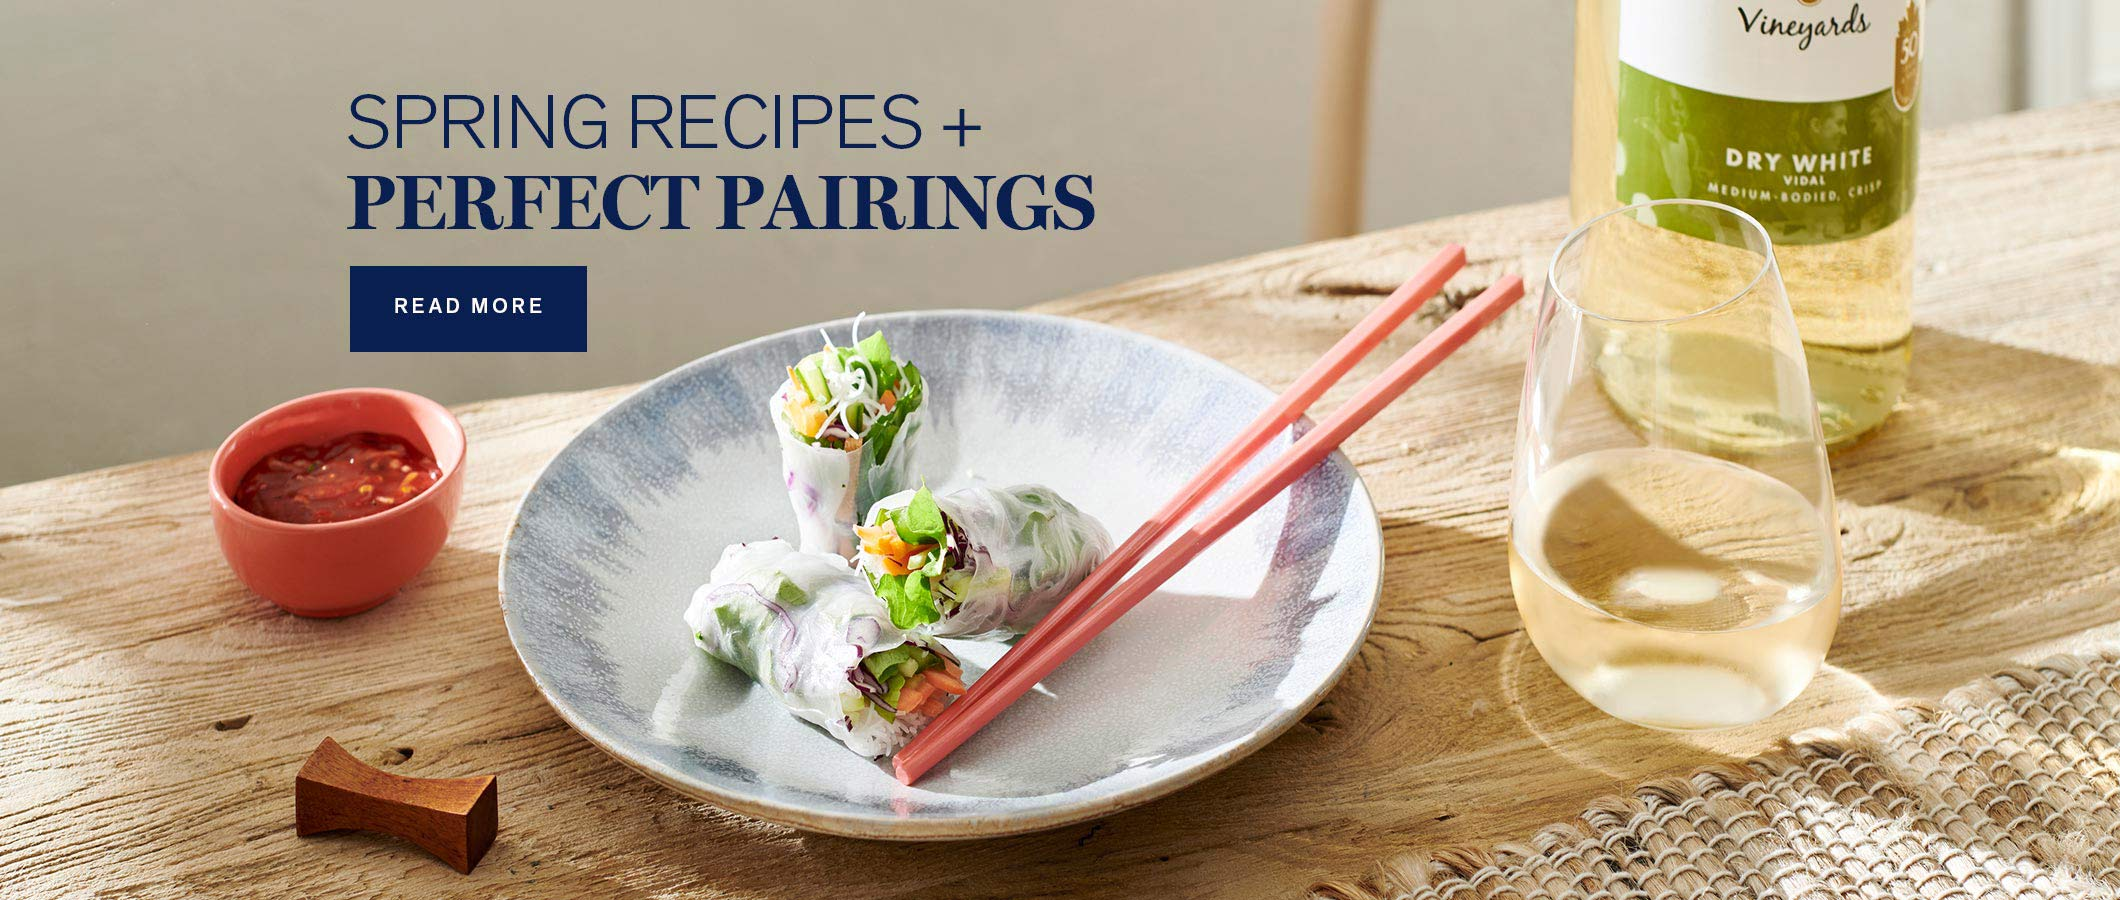 Spring Recipes + Perfect Pairings.  READ MORE